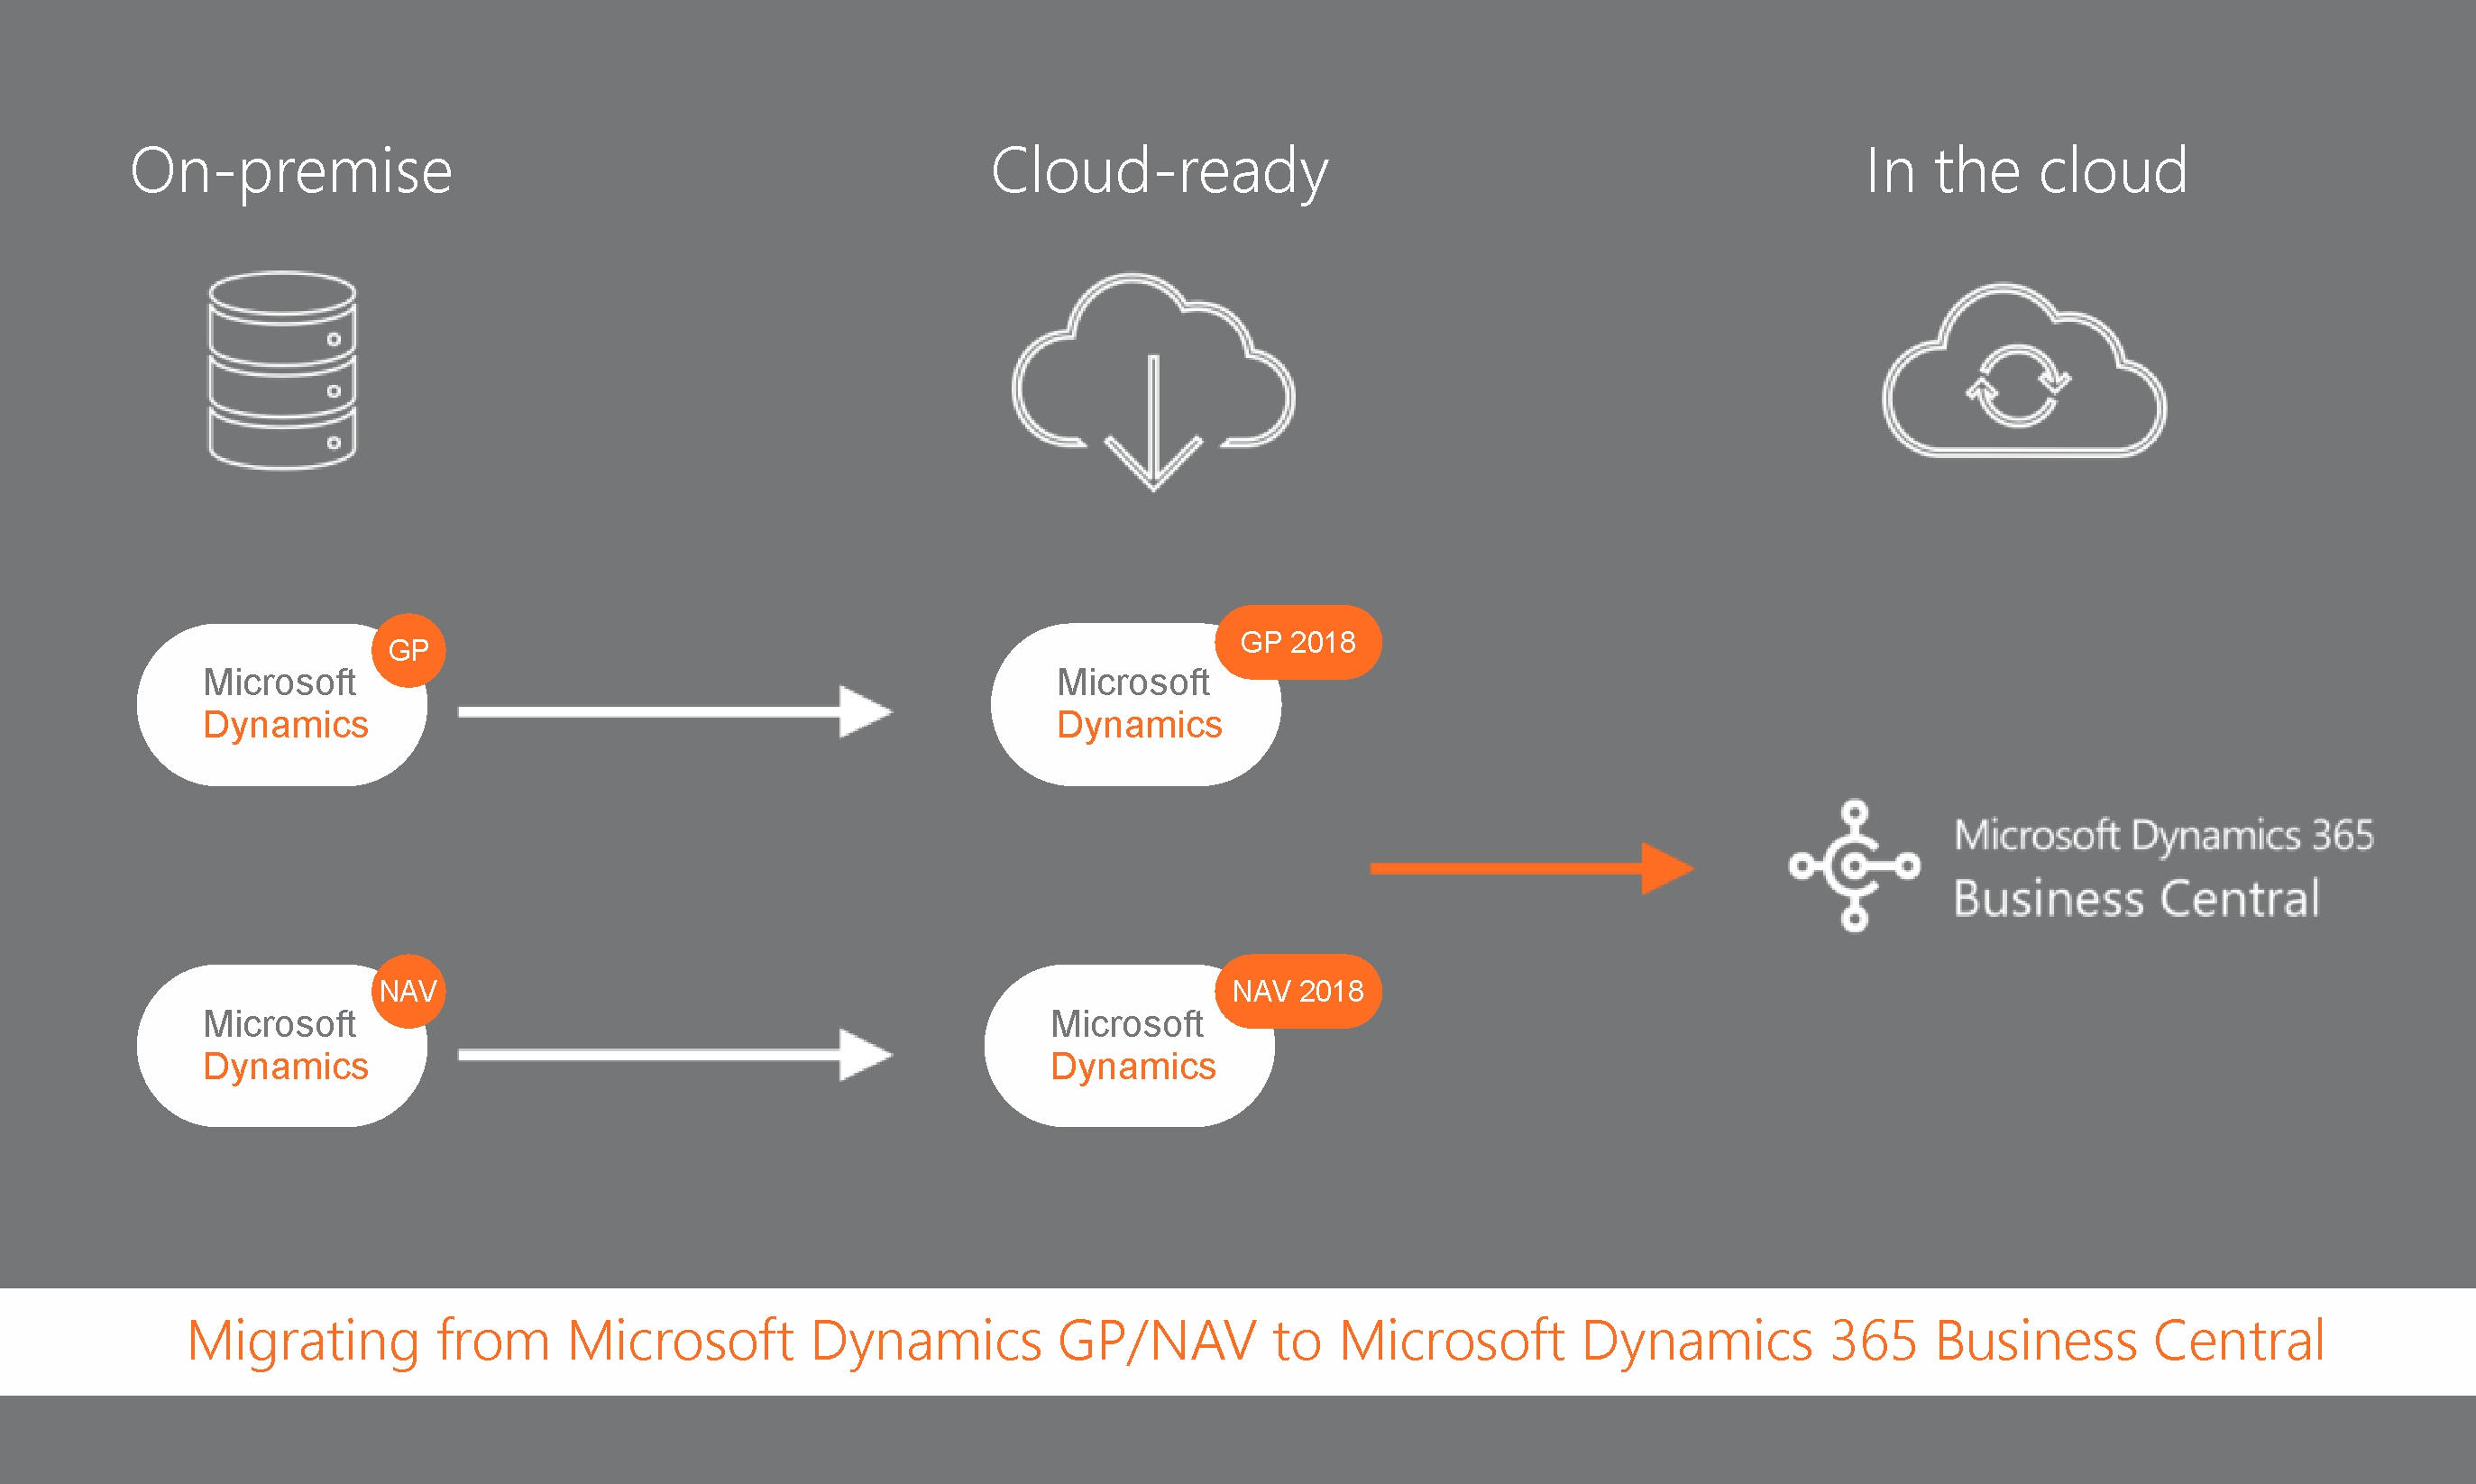 Migrating from Microsoft Dynamics GP/NAV to Microsoft Dynamics 365 Business Central